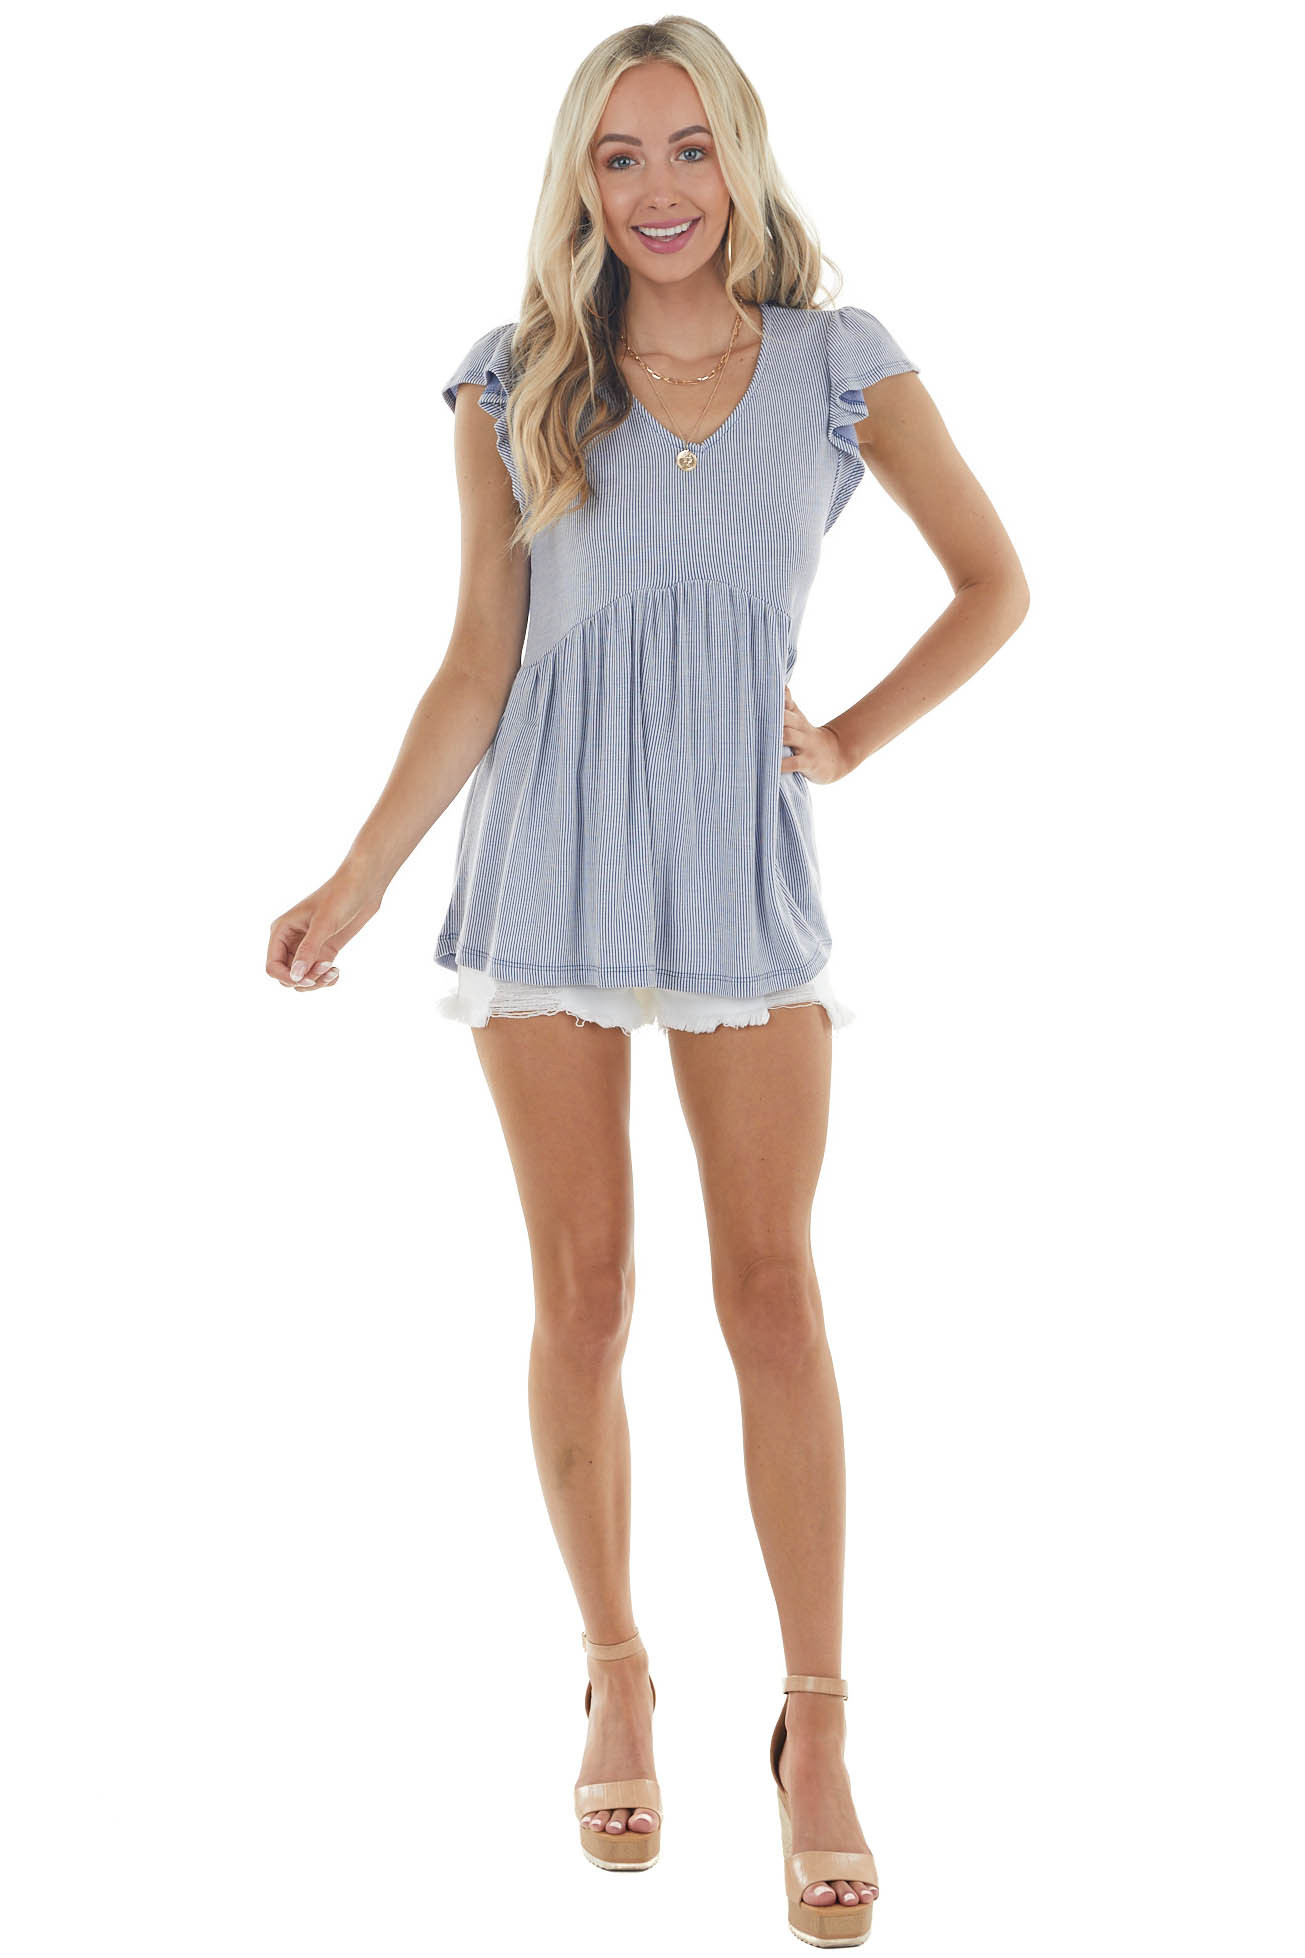 Denim Blue Striped Babydoll Top with Ruffle Cap Sleeves